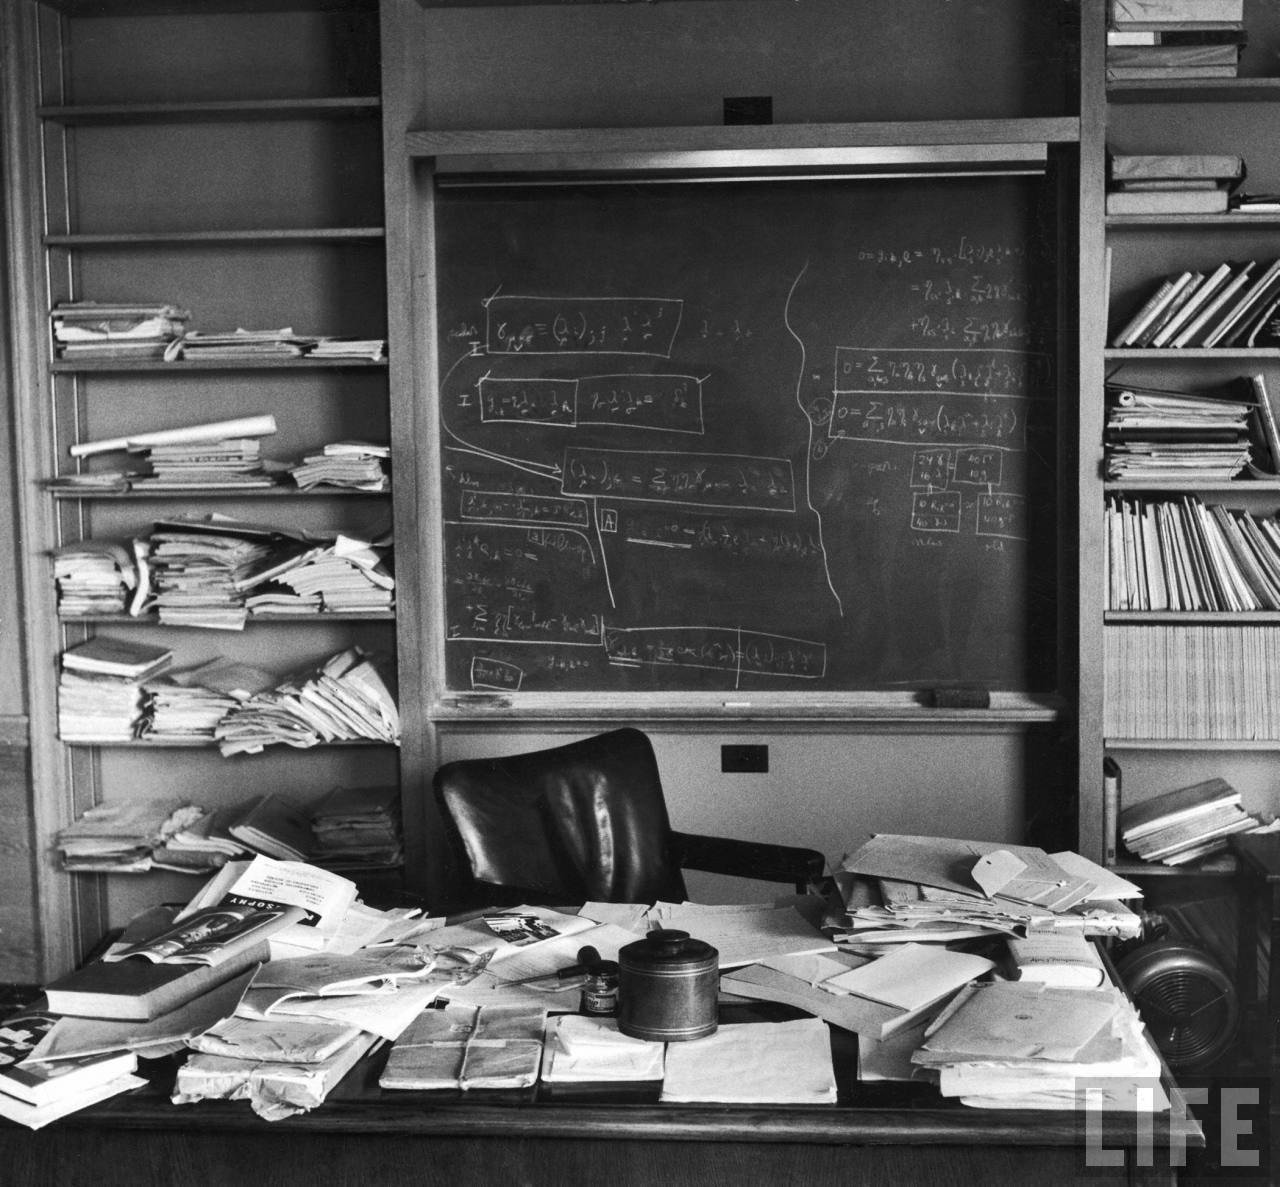 Einstein's desk the day he died. Ralph Morse / Time